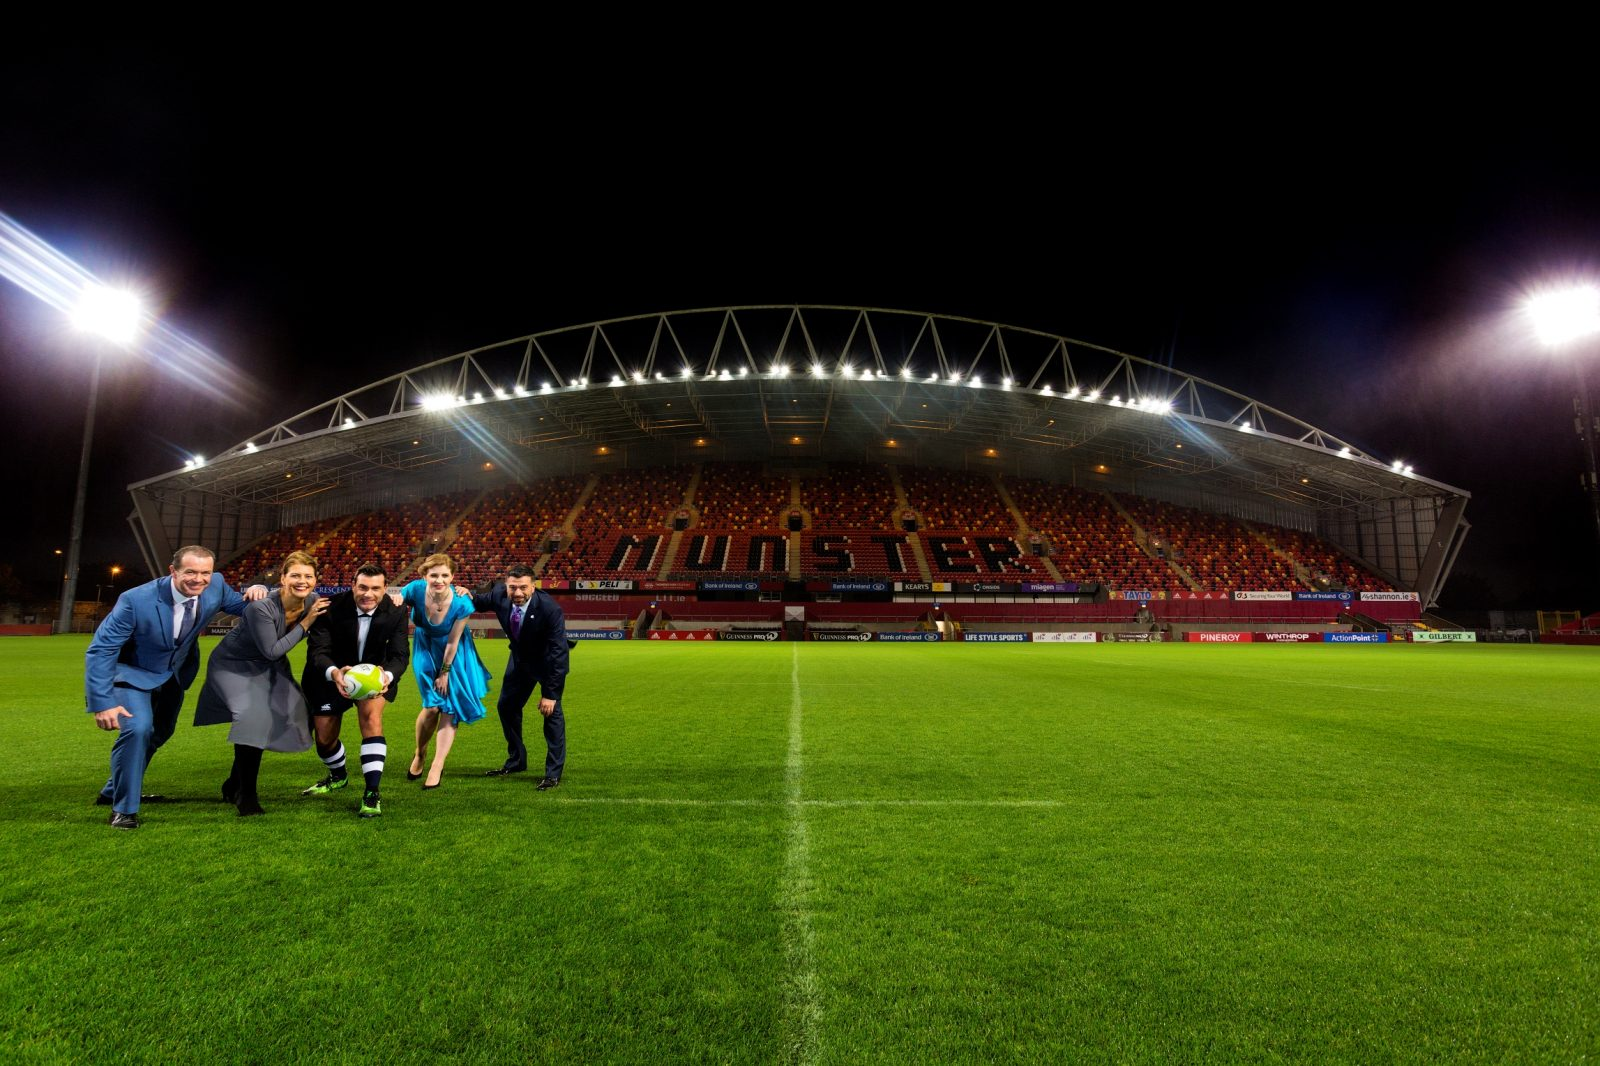 Ireland Corporate Travel Conferences - Thomond Park, Limerick